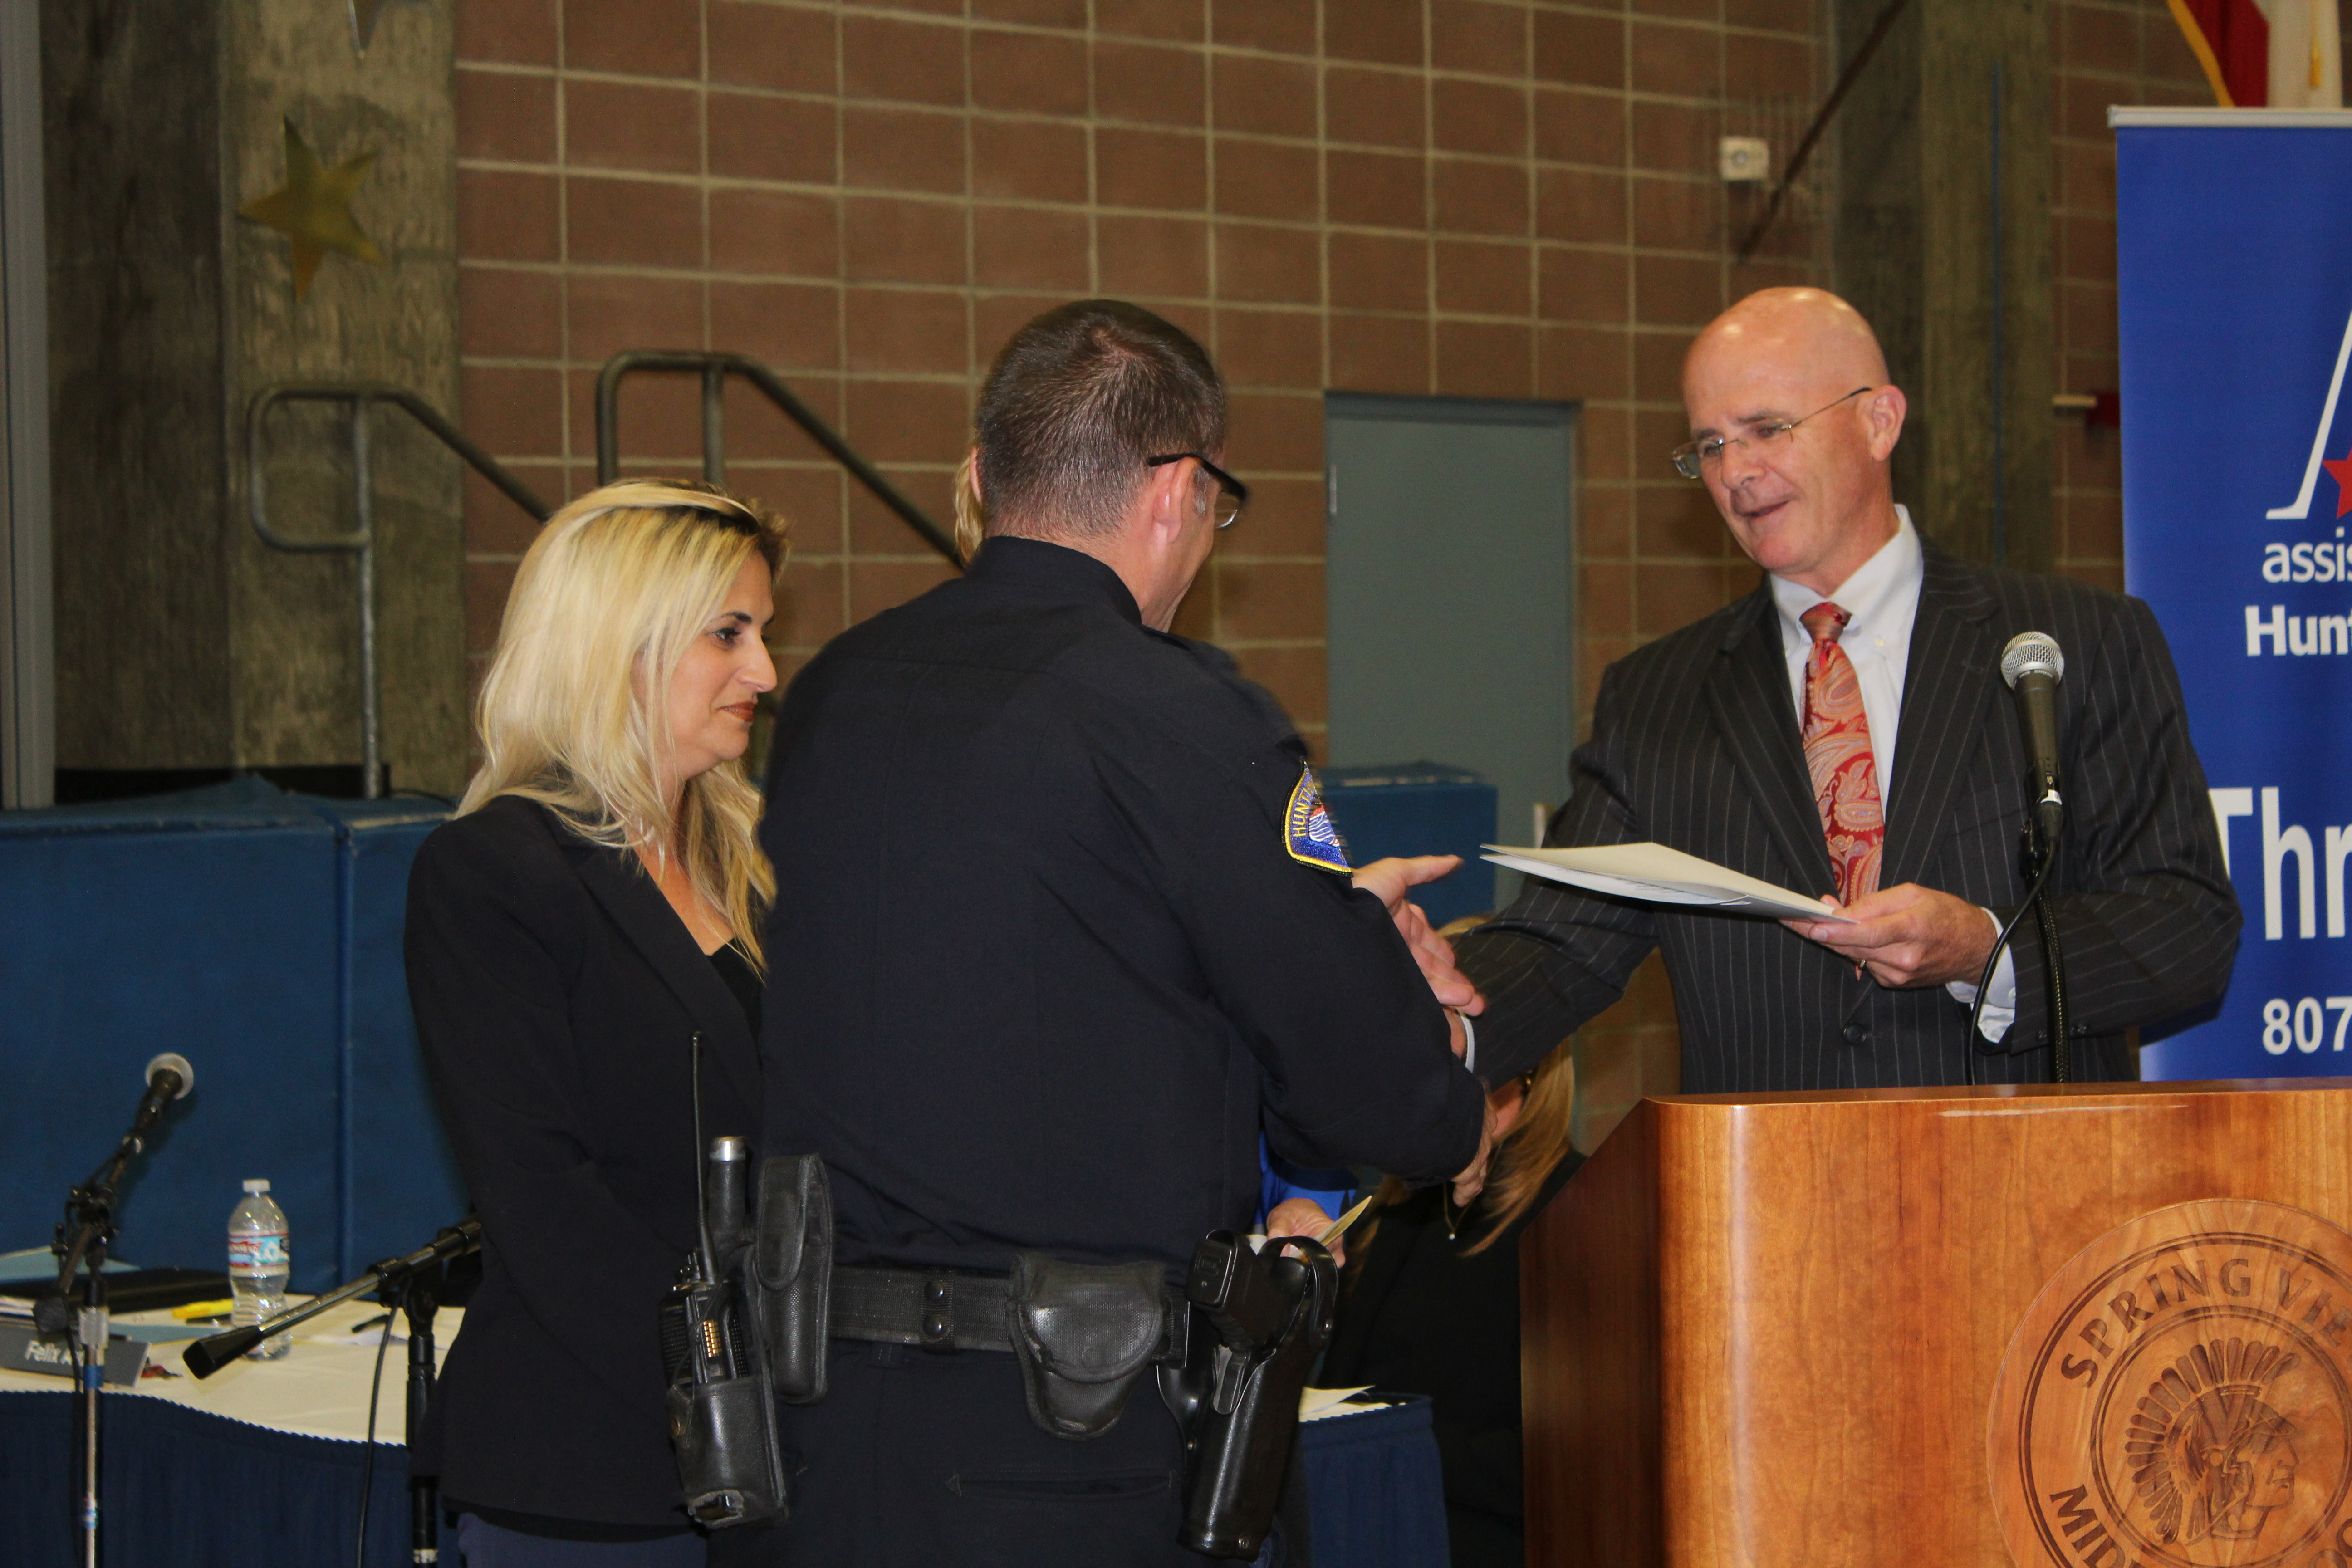 HBPD Officer Derek Young Recognized